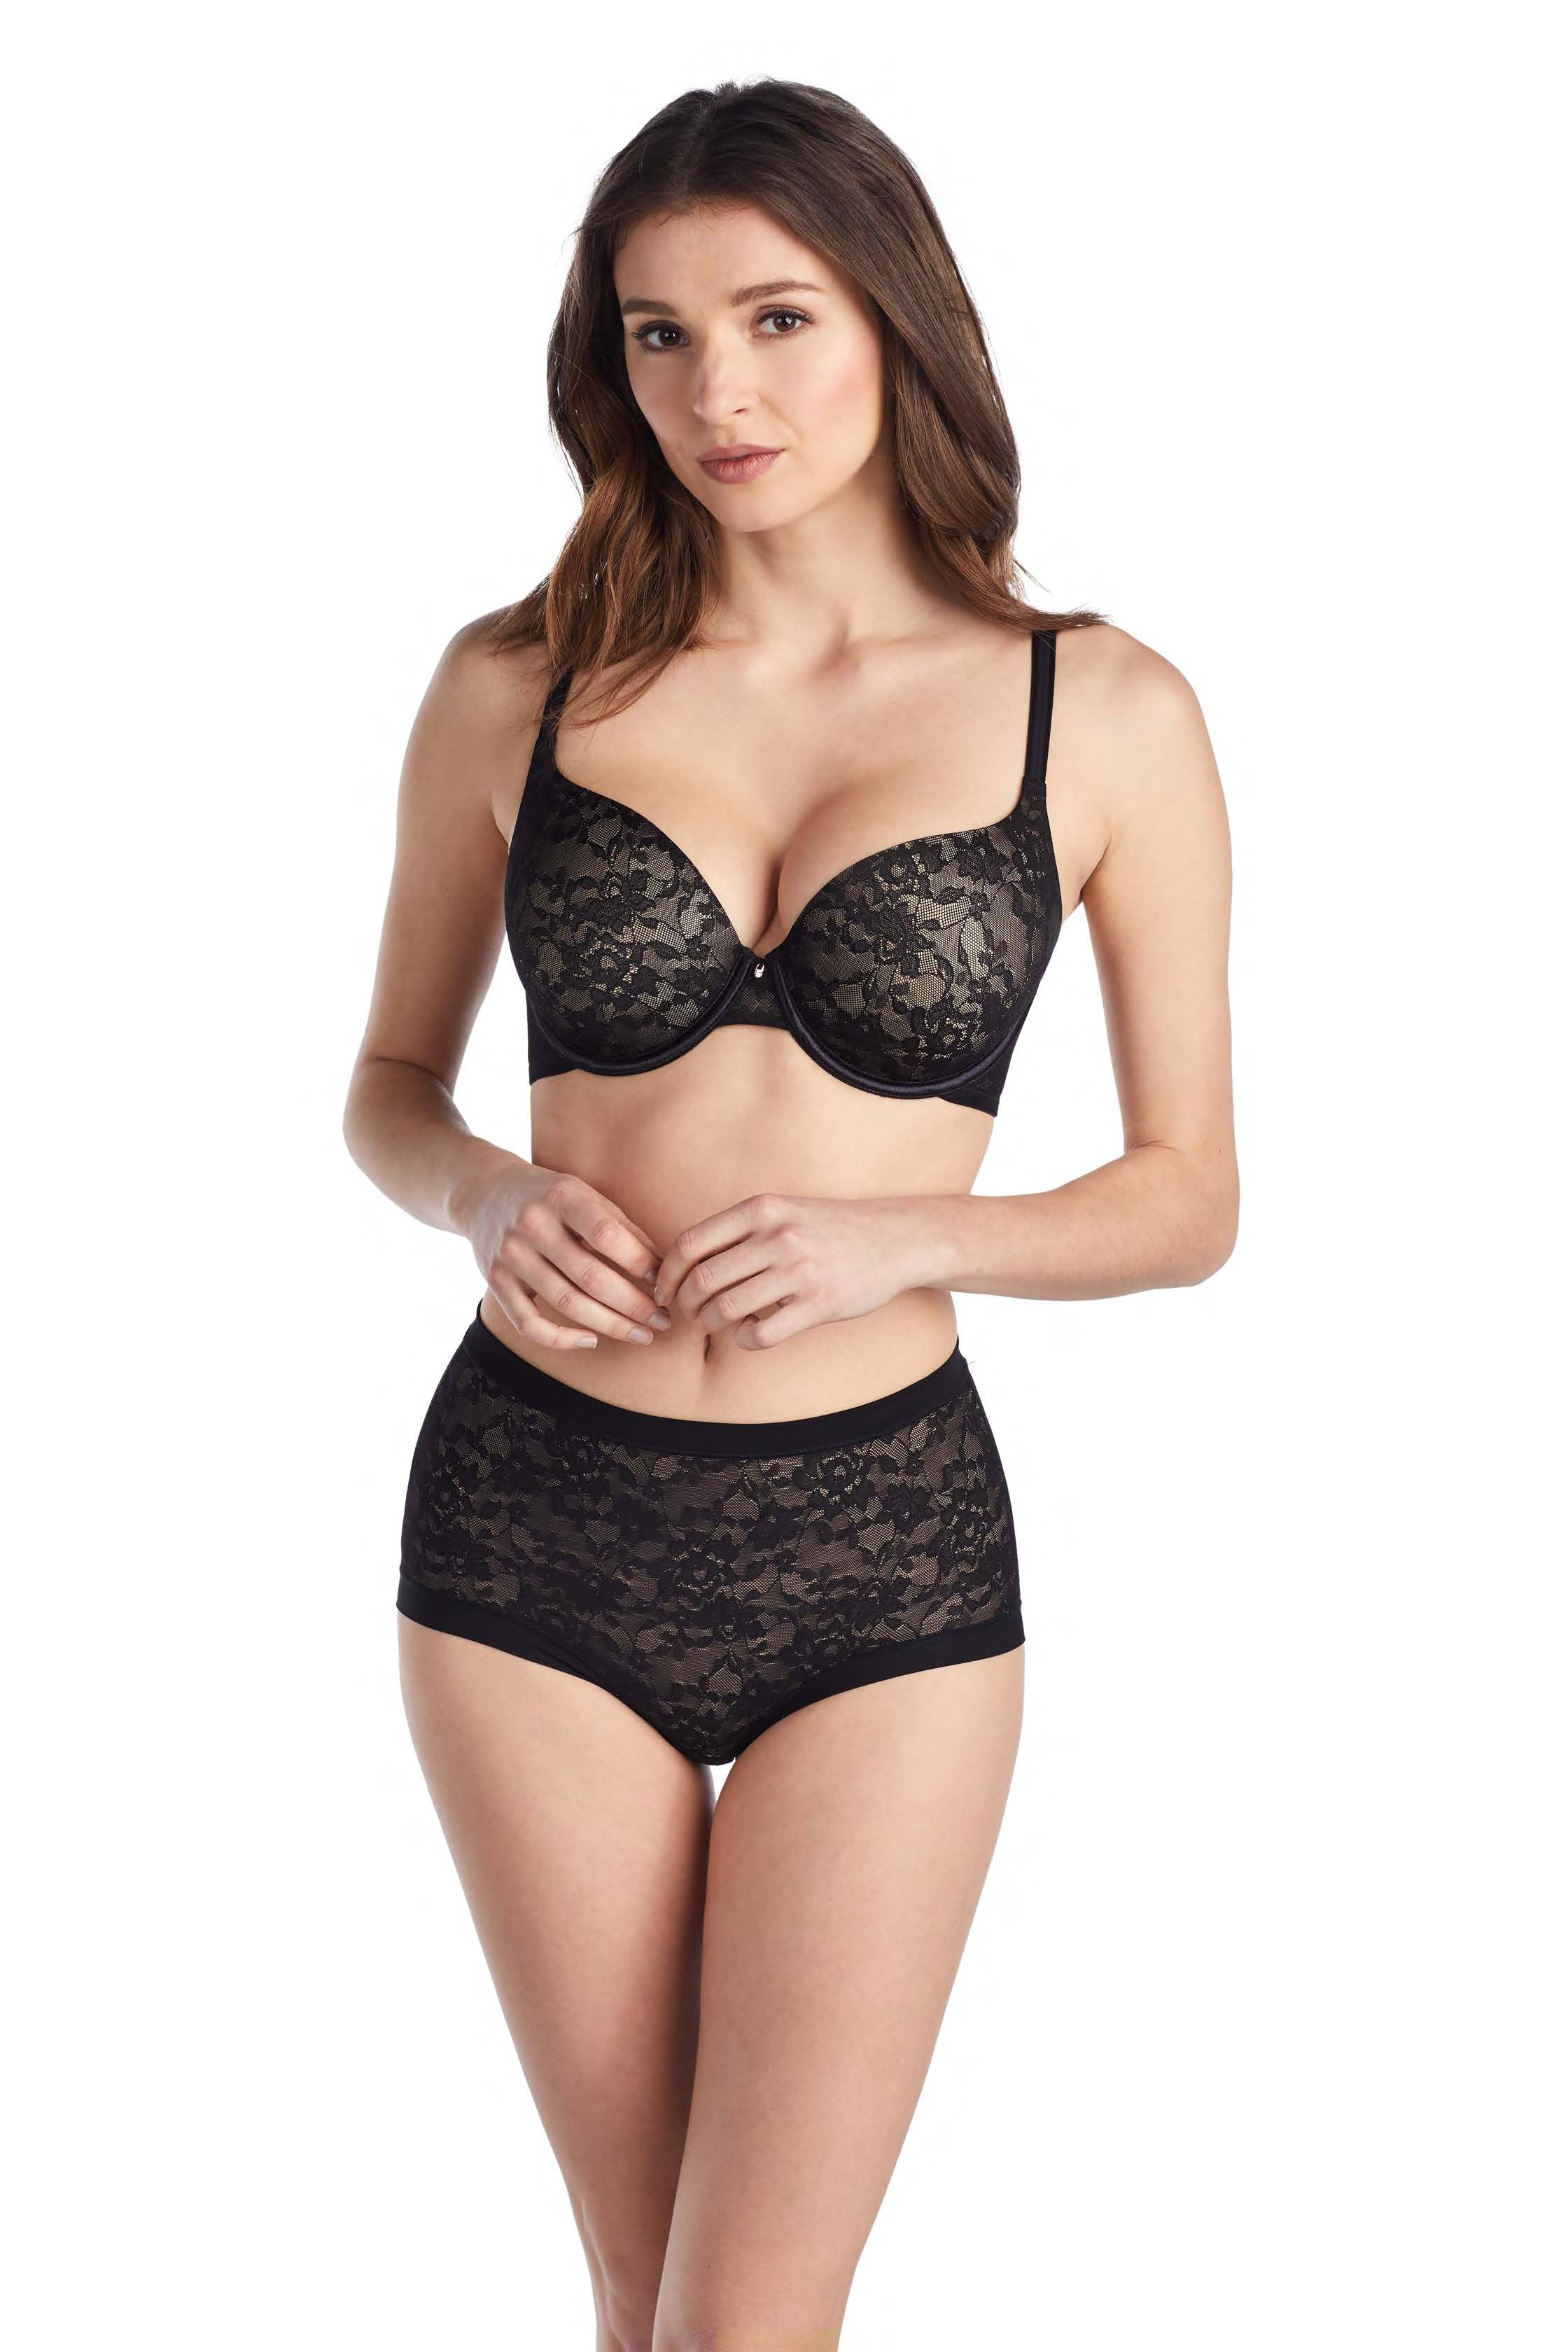 Lace Perfection T-Shirt Bra – Black